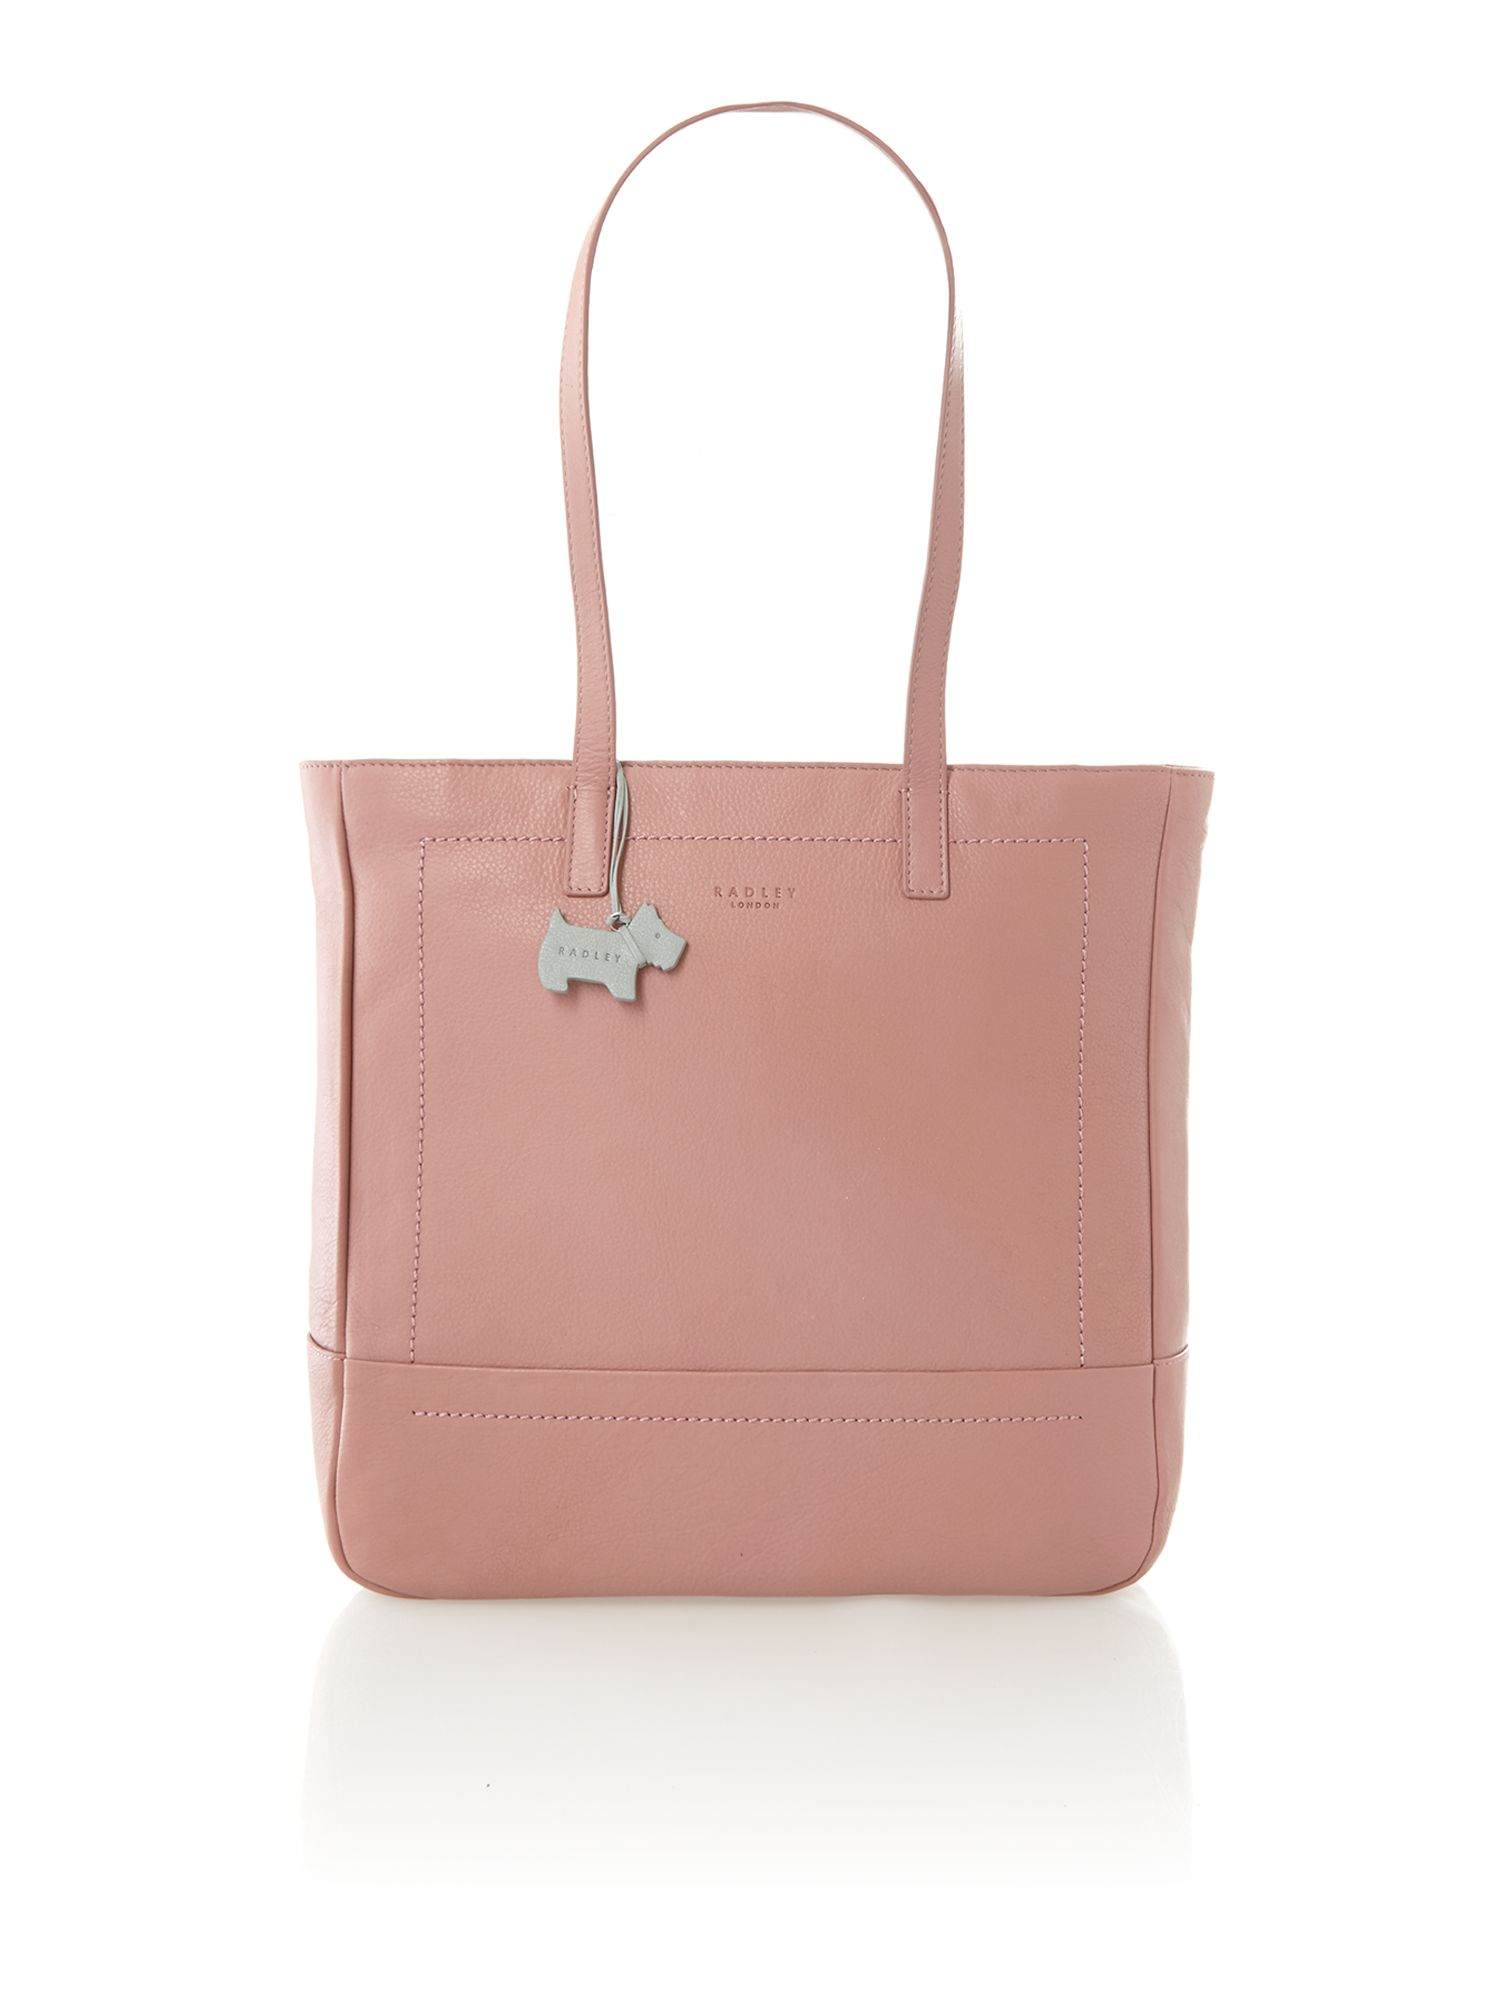 Finsbury large ziptop tote pink leather bag